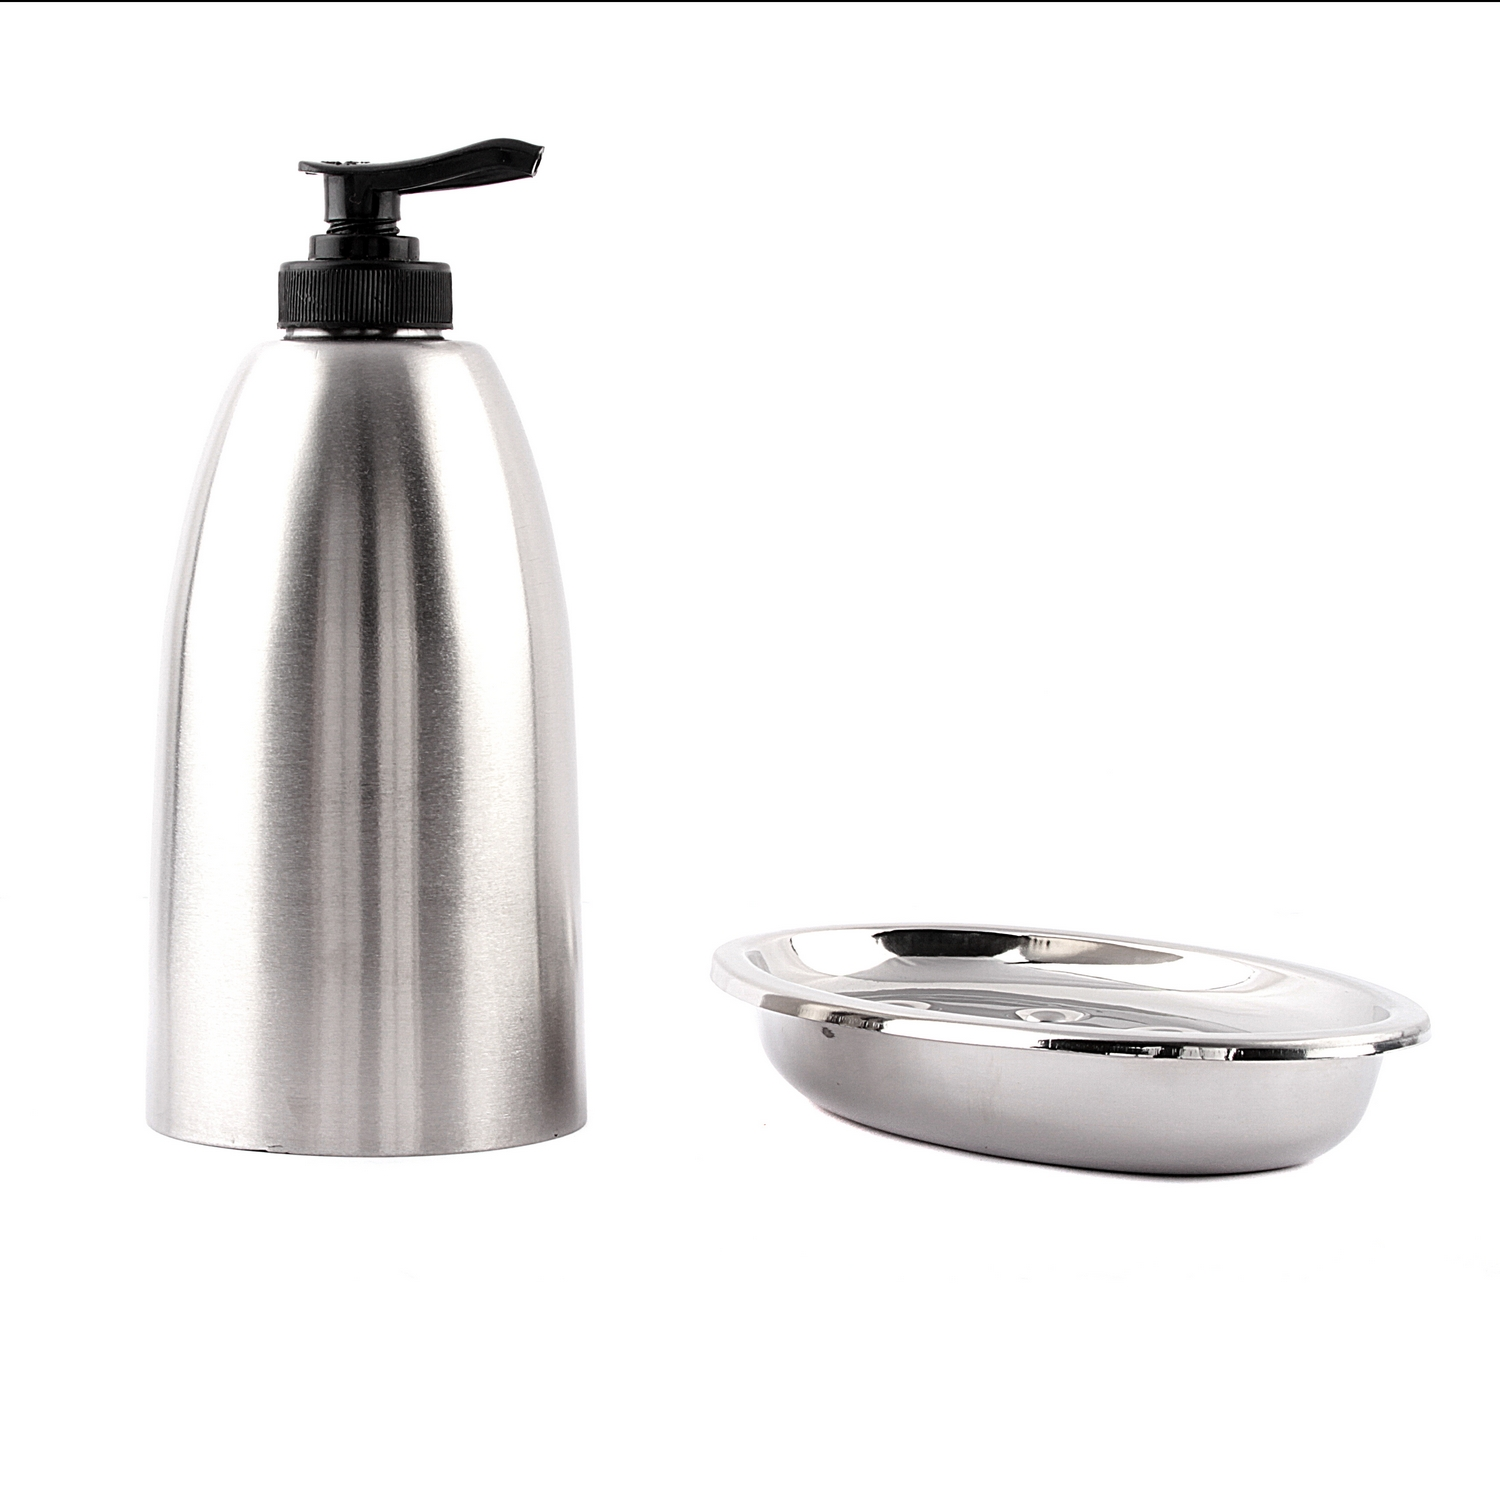 dome-soap-dispenser-with-oval-soap-dish